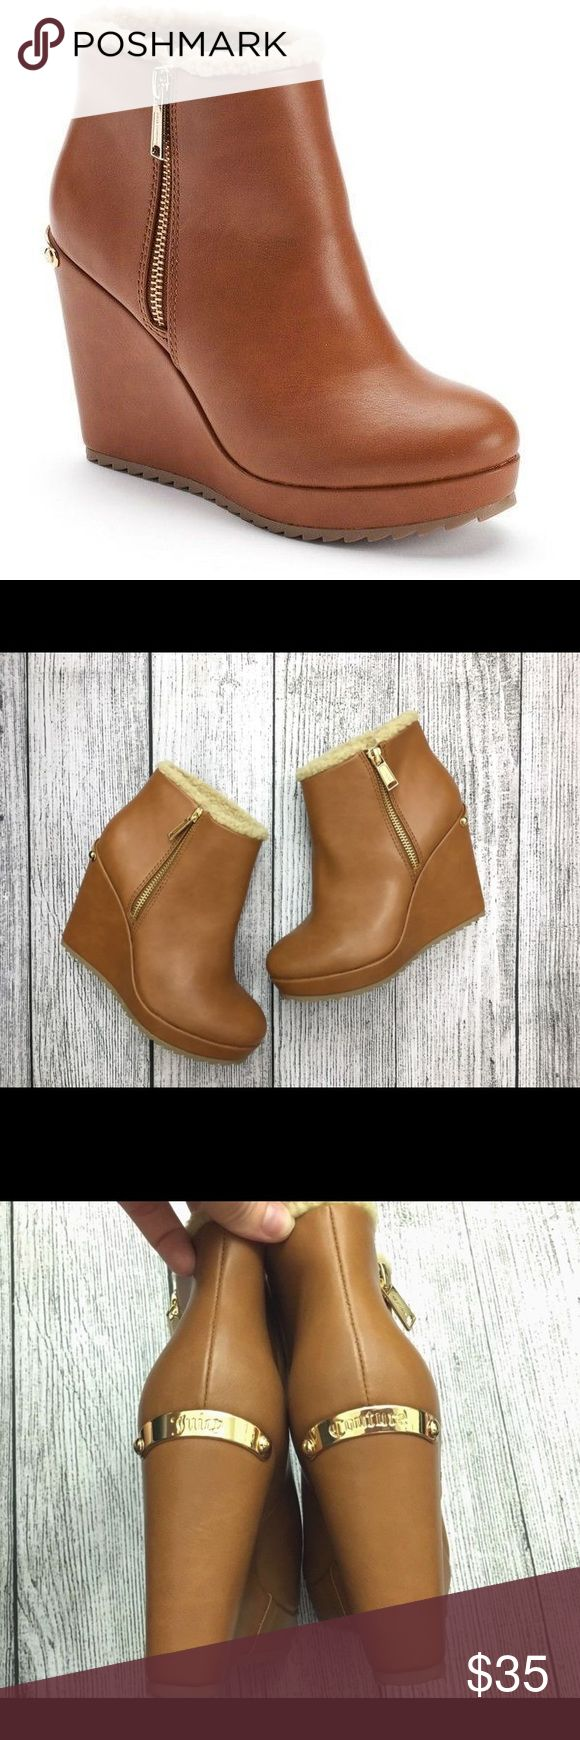 "NEW Juicy Couture Platform Wedge Ankle Boots BRAND NEW (without box) Juicy Couture Platform Wedge Ankle Boots! Tan/brown with gold zipper Faux fur Women's size 6  4"" heel height with 1"" platform Juicy Couture Shoes Ankle Boots & Booties"